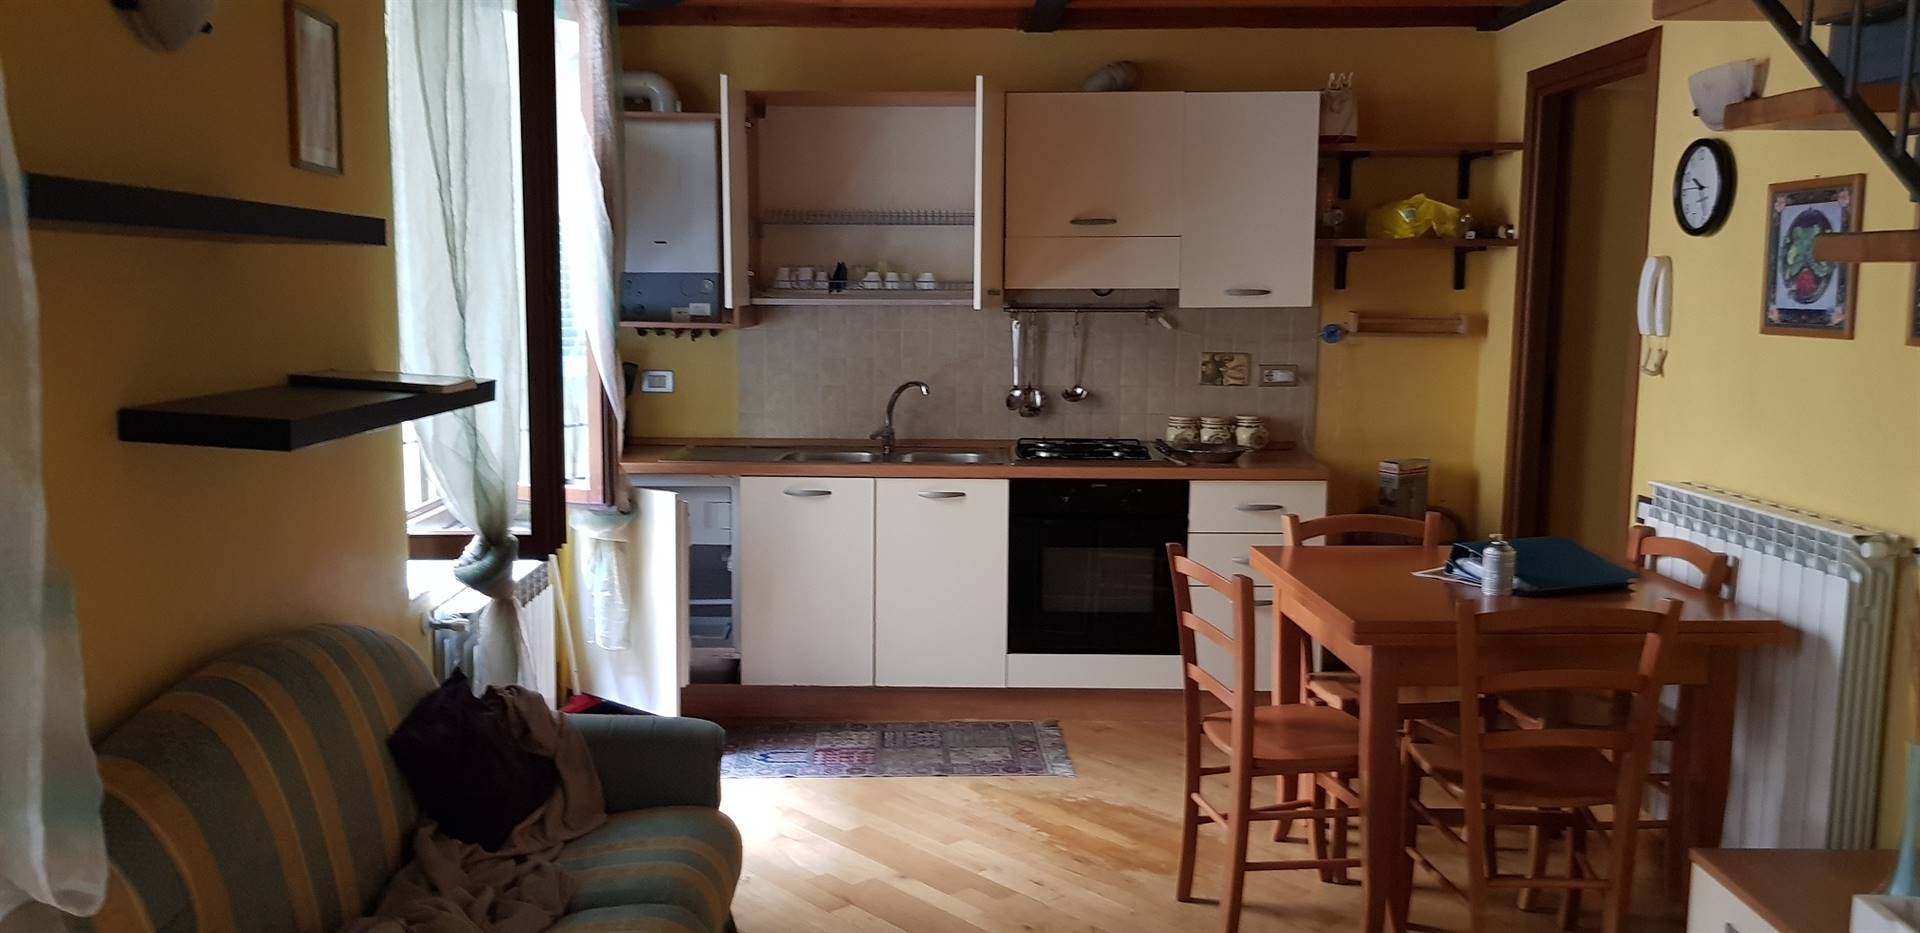 LIBERTÀ, FIRENZE, Apartment for rent of 40 Sq. mt., Habitable, Heating Individual heating system, Energetic class: G, placed at 1° on 5, composed by: